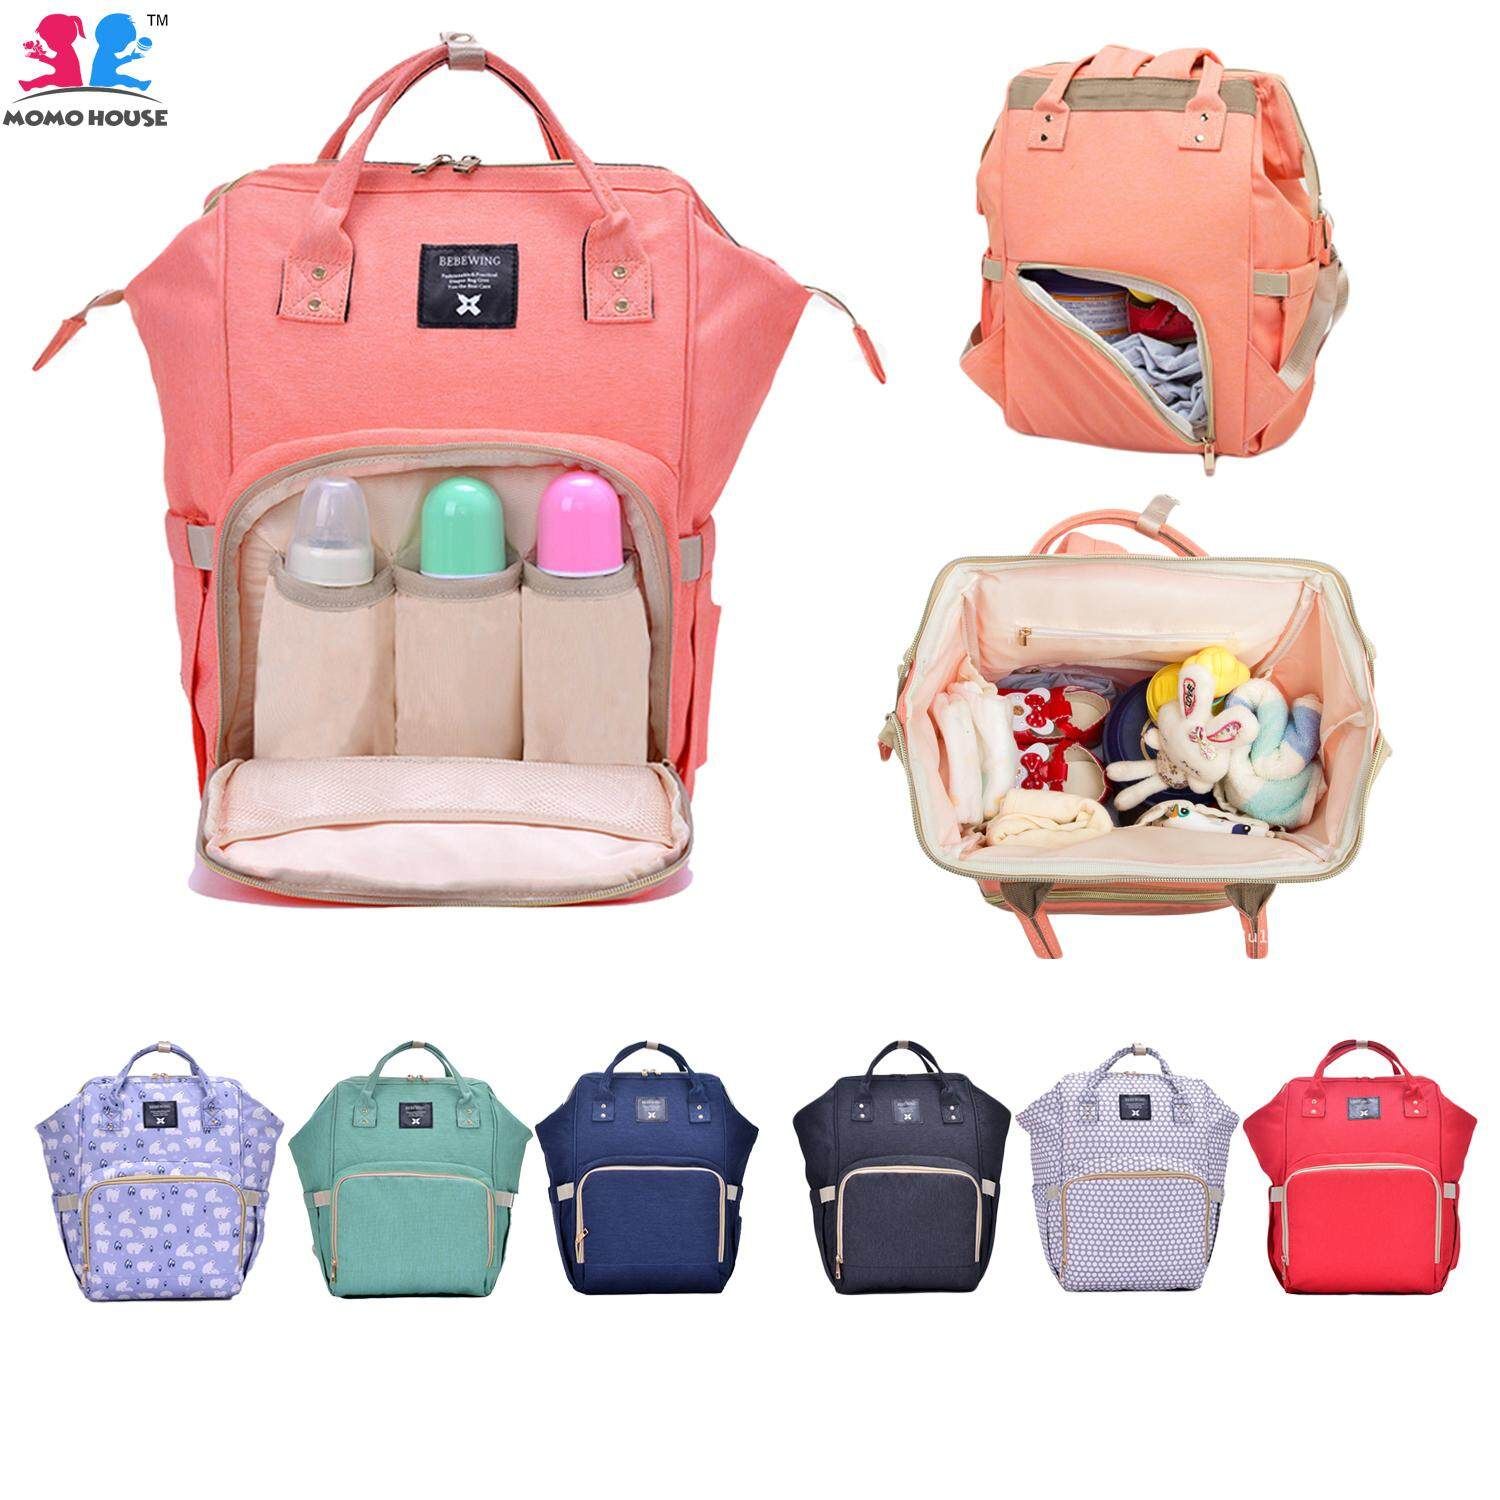 Diaper Bags For The Best Price In Malaysia Babygo Inc Metro Backpack Blue Baby Nappy Maternity Large Capacity Bag